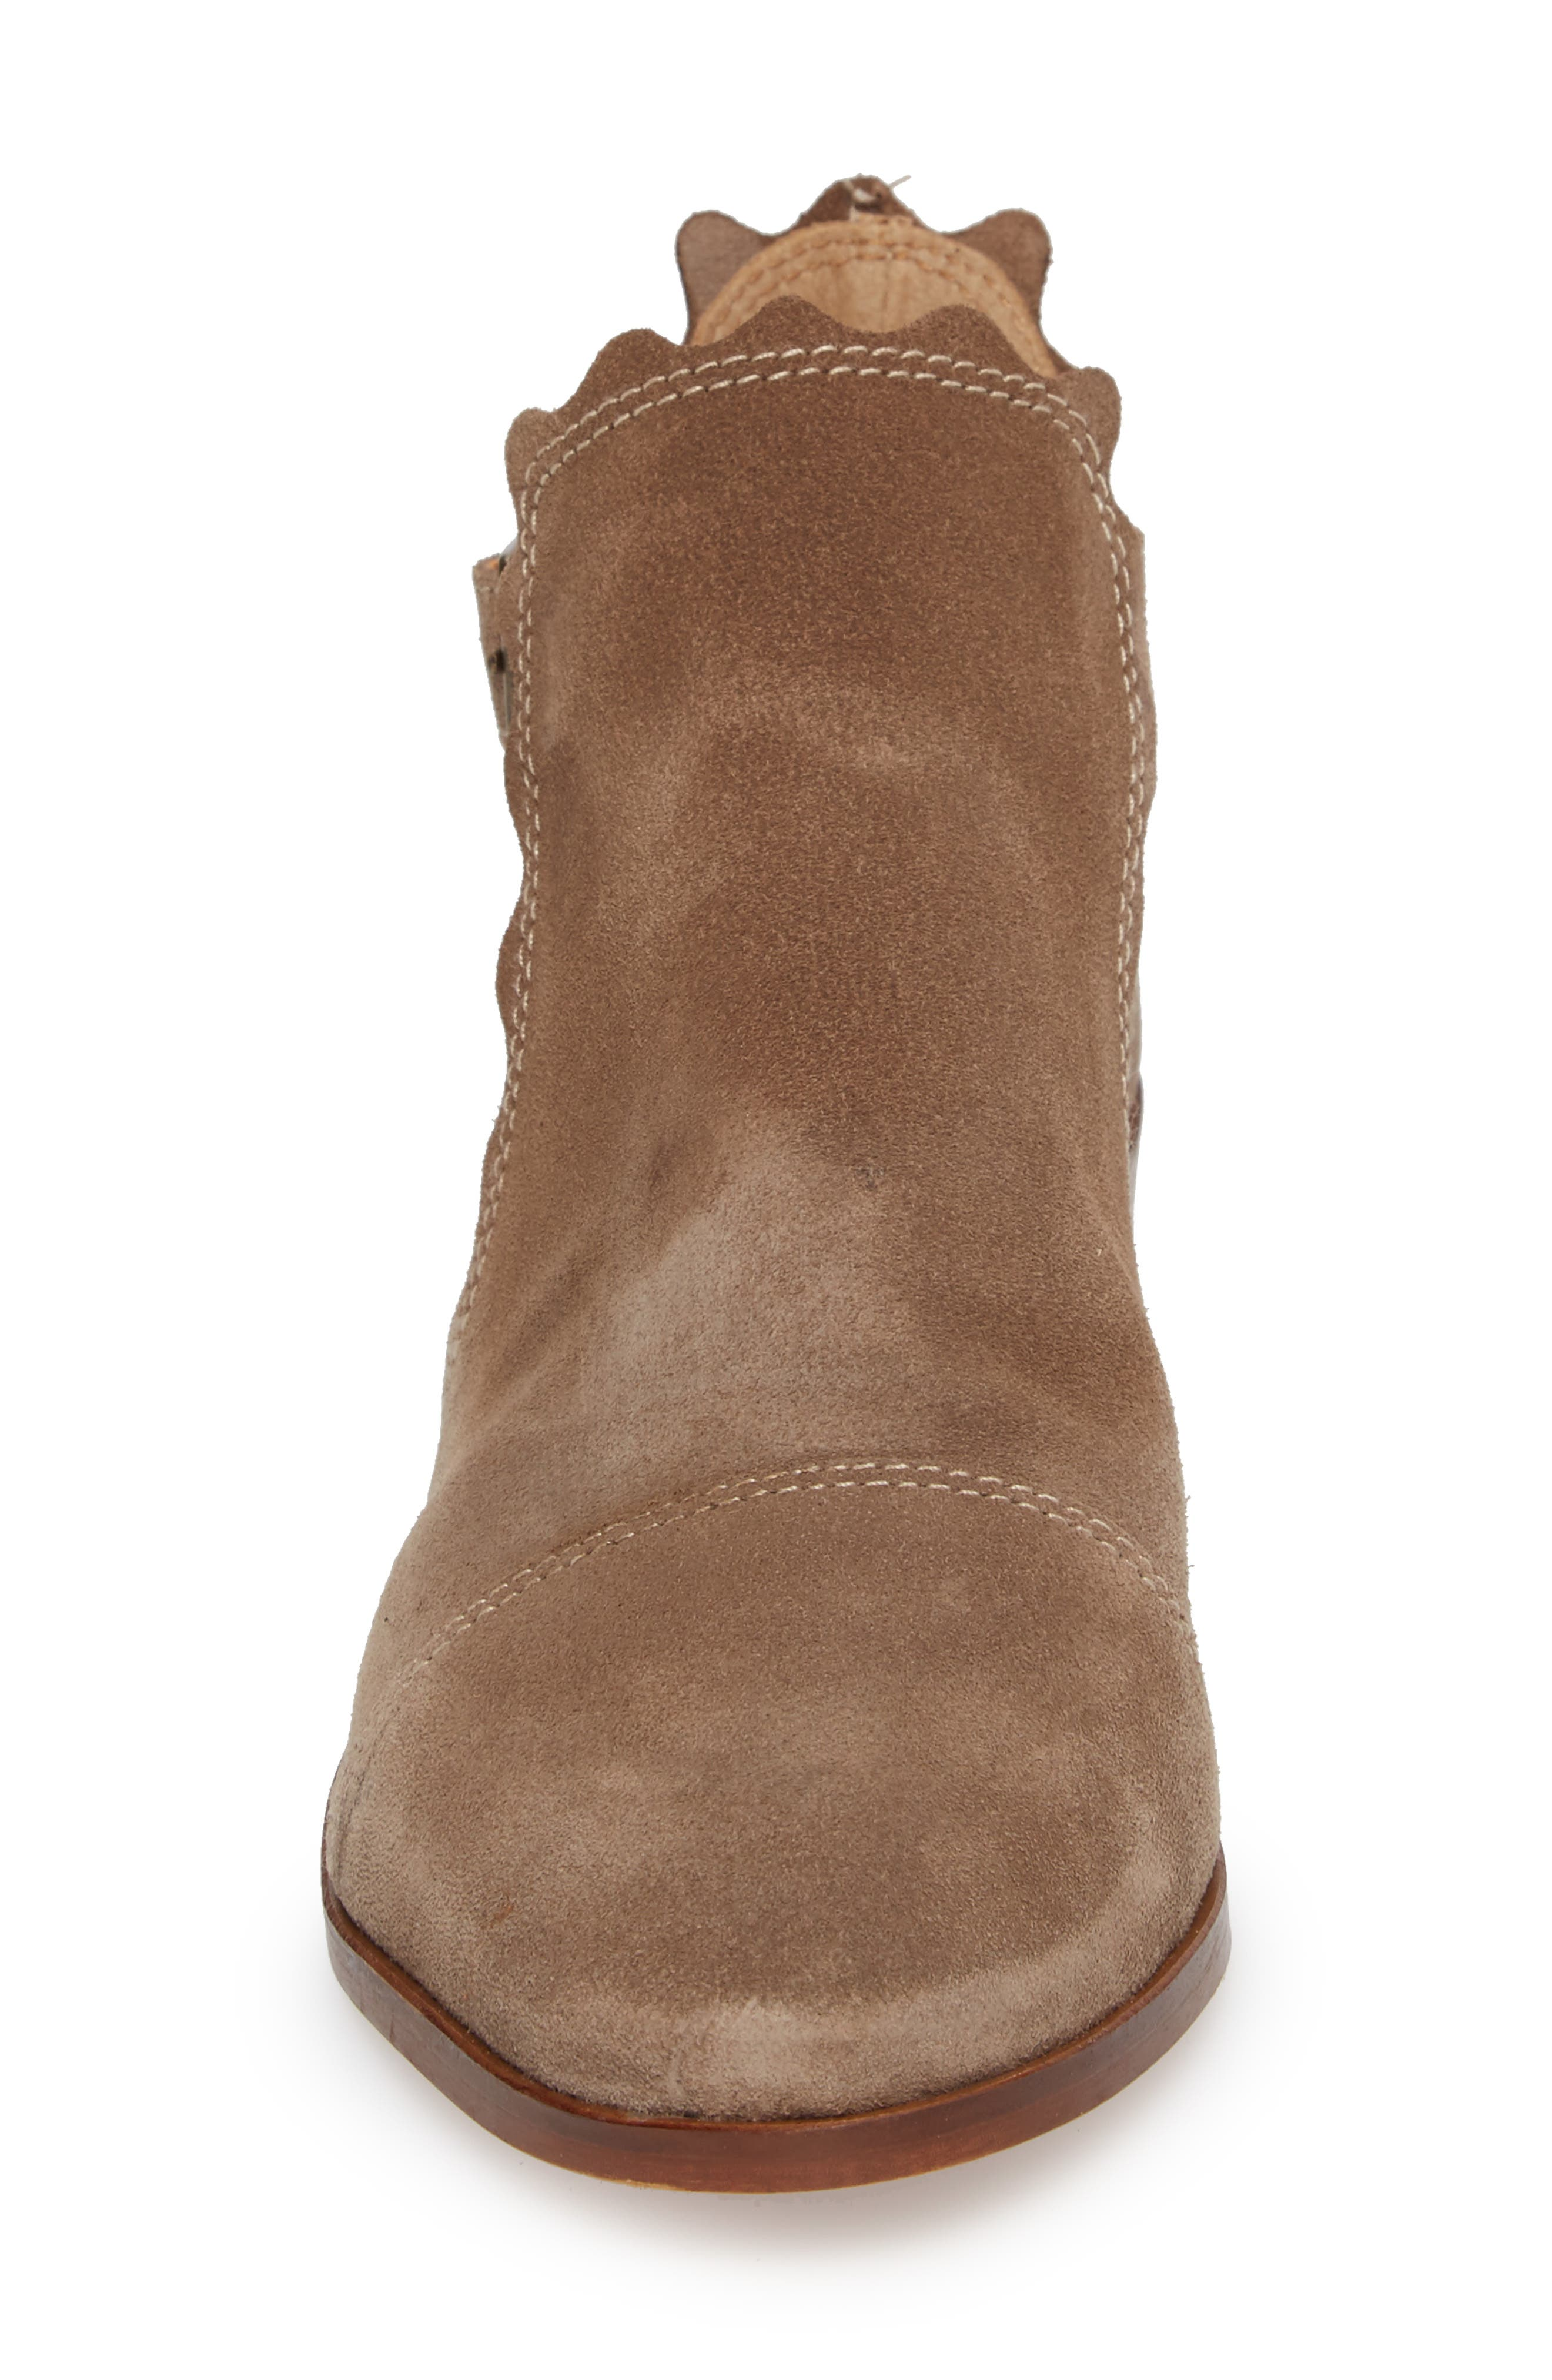 Beau Open Side Bootie,                             Alternate thumbnail 4, color,                             Taupe Suede